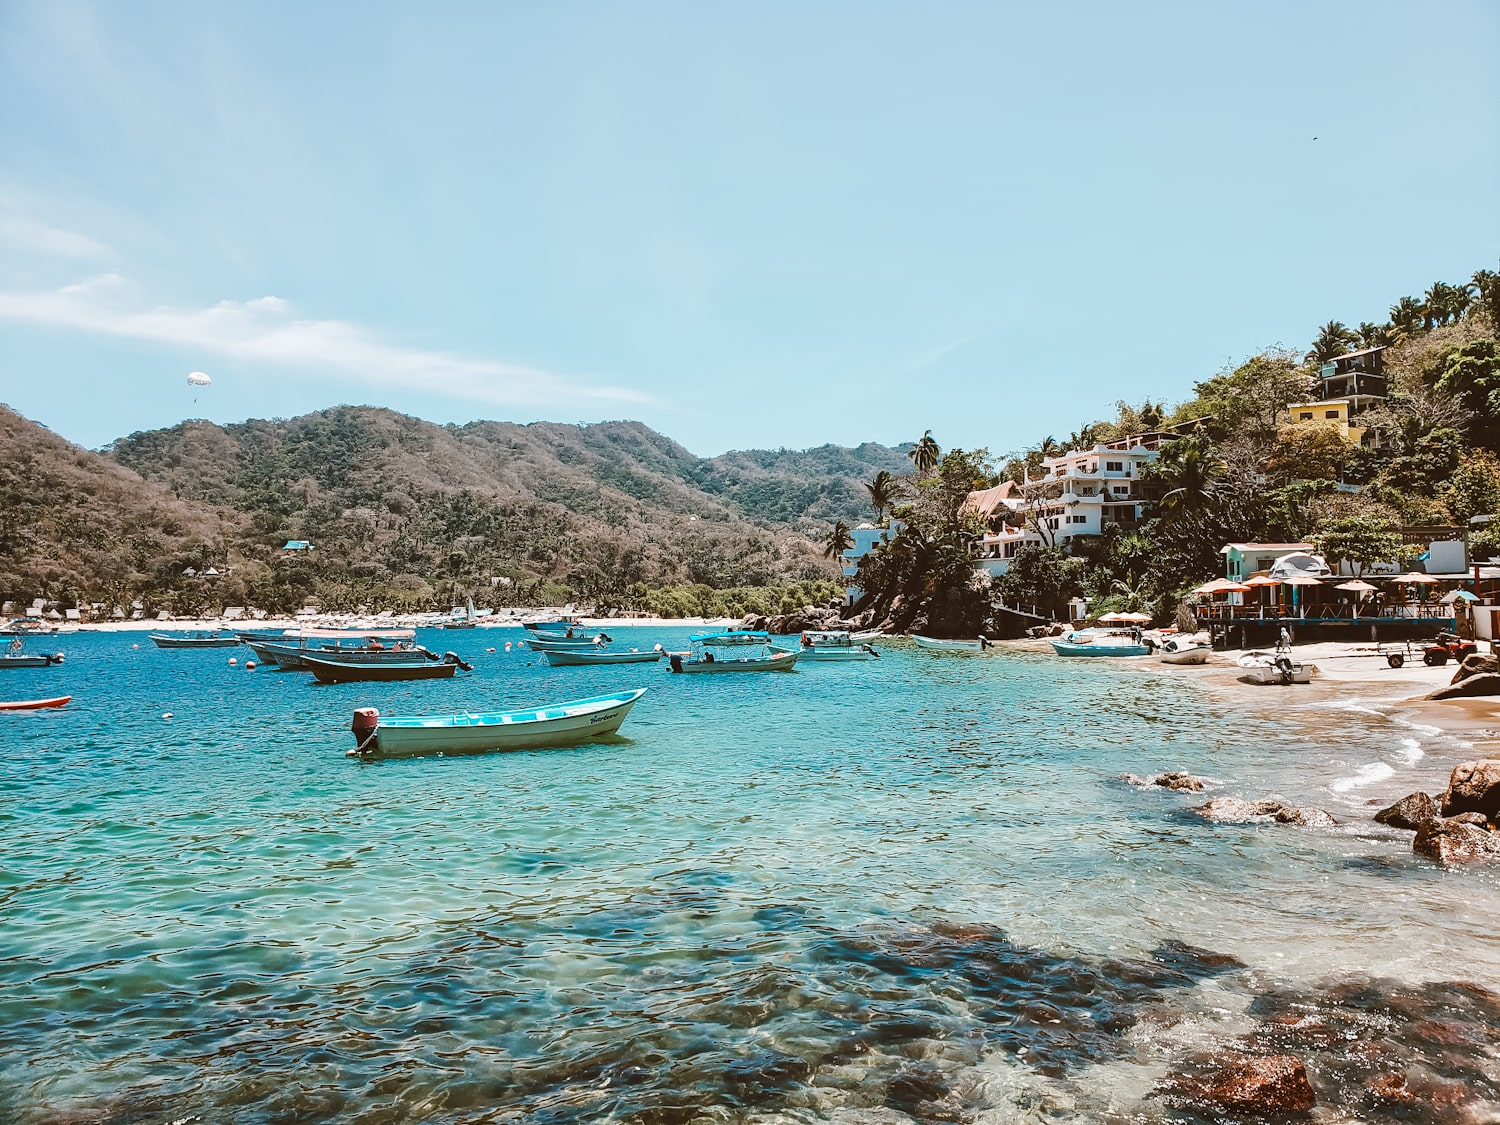 boats floating in the yelapa bay